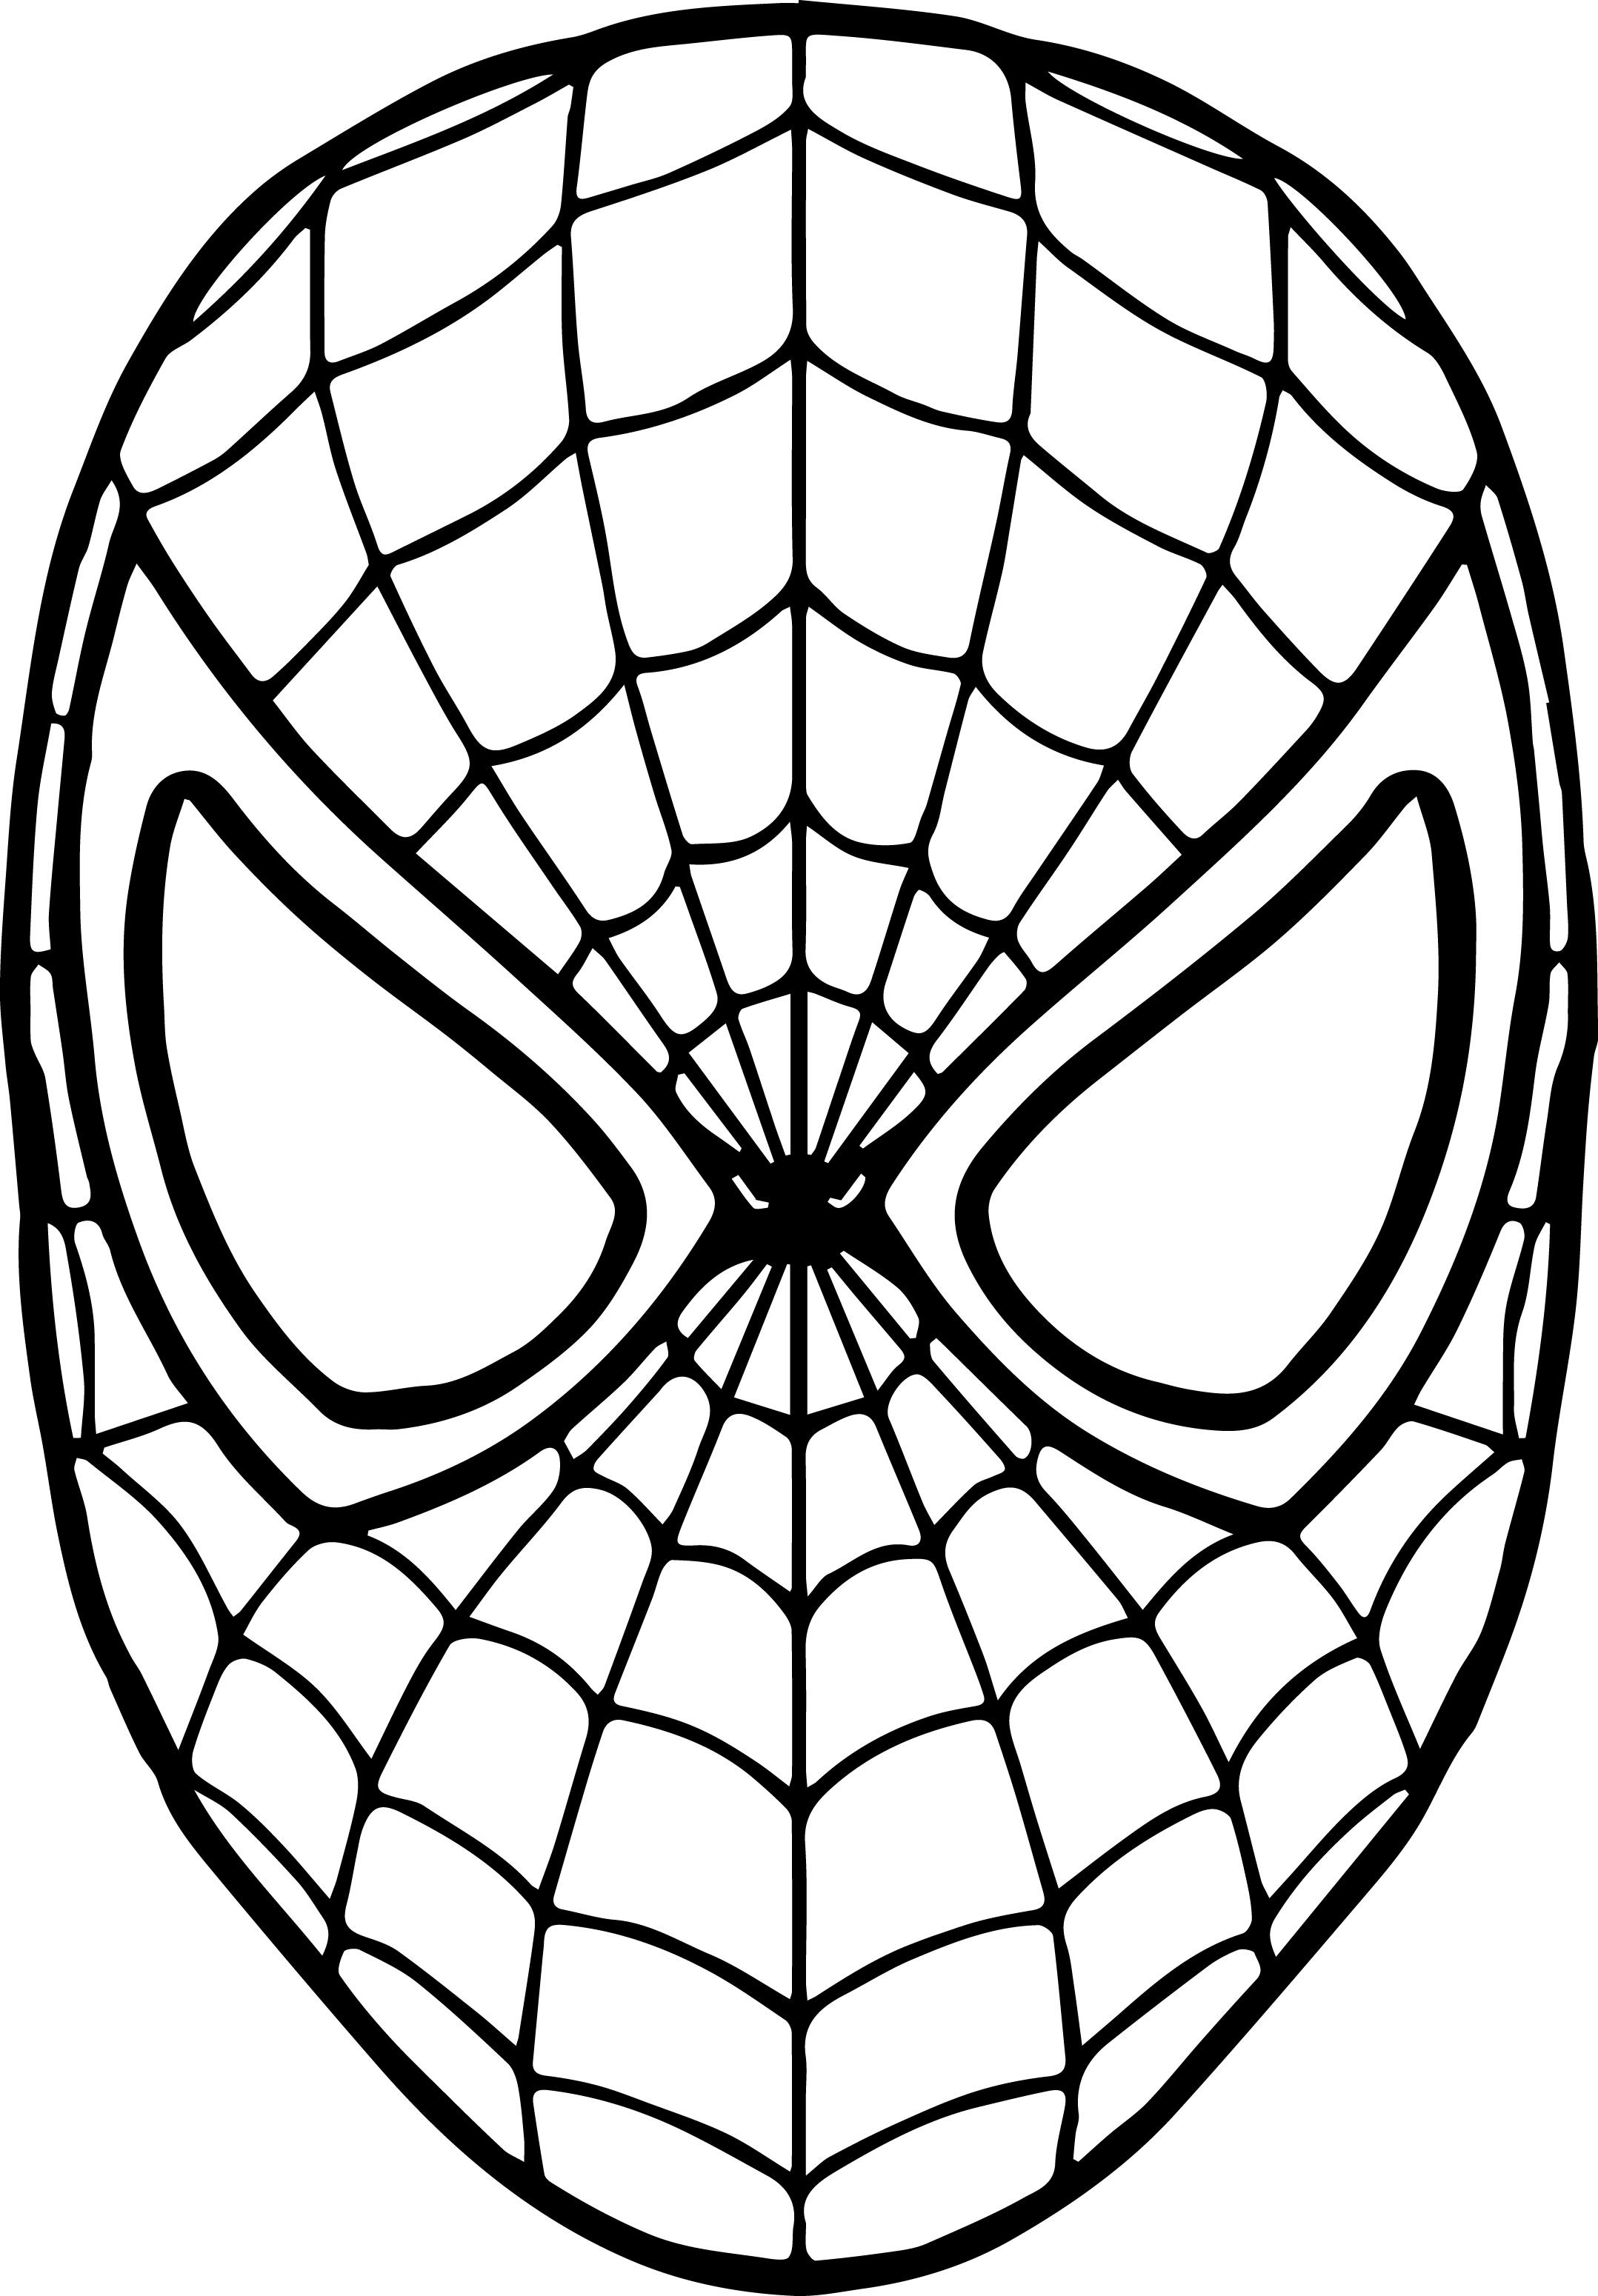 spiderman-mask-coloring-page  Spiderman mask, Spiderman coloring